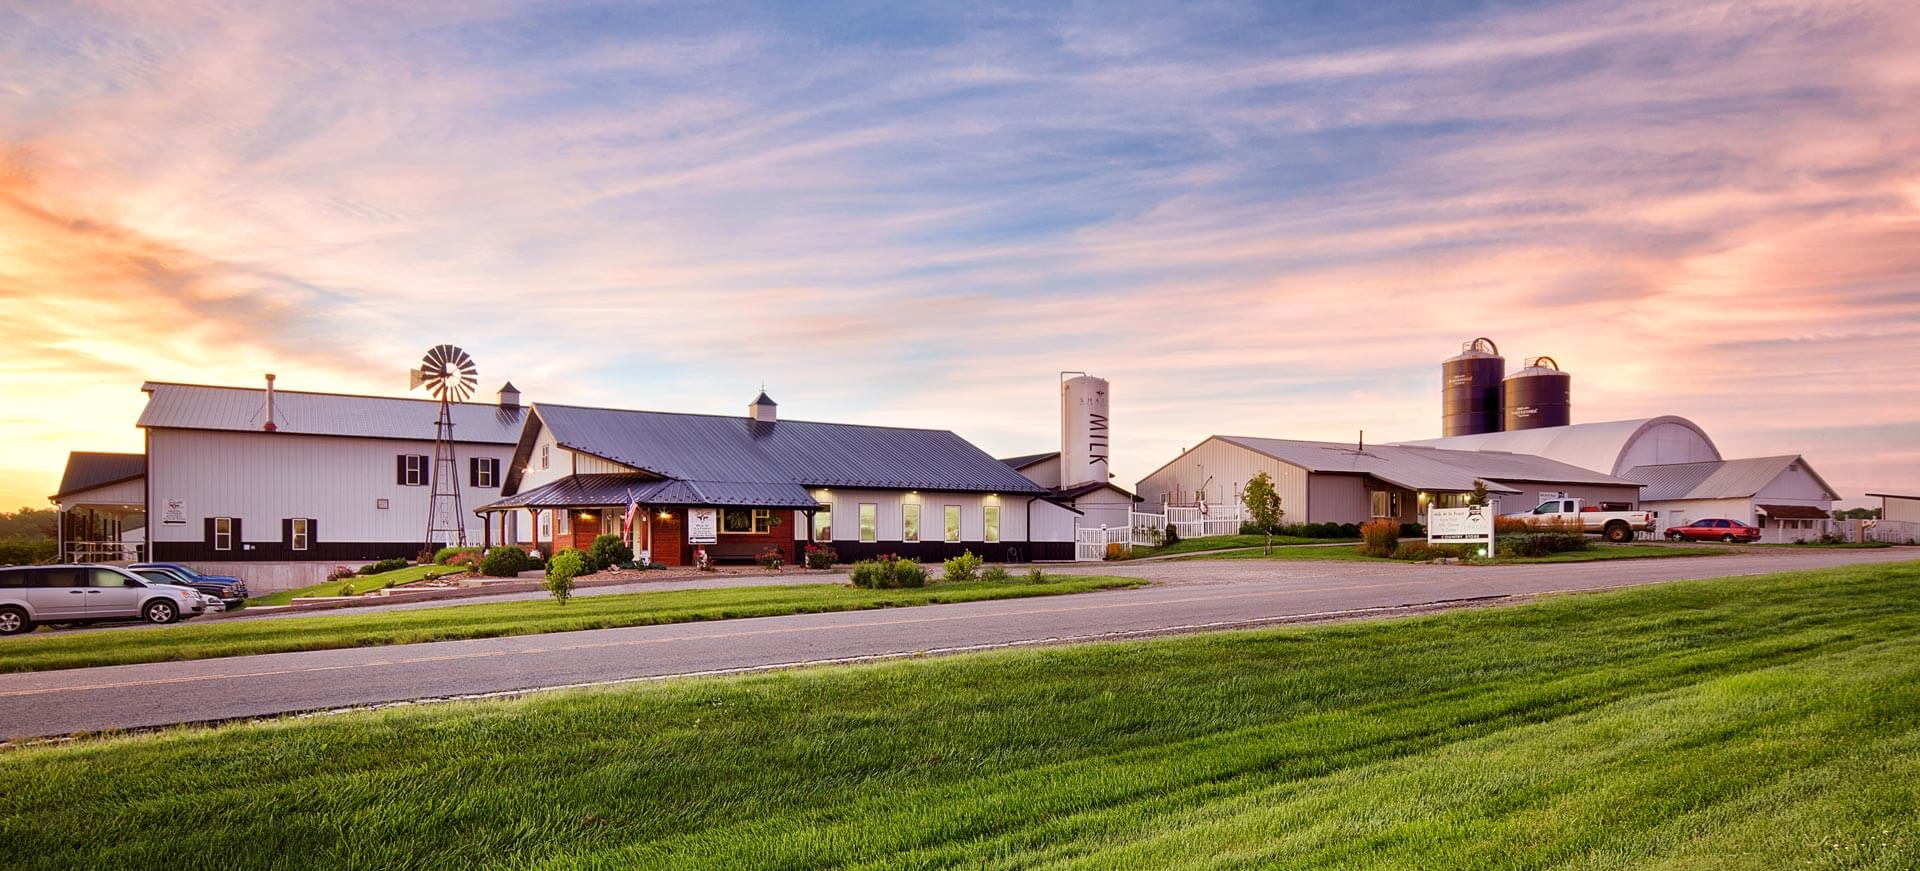 View of Shatto Milk Dairy buildings along a road with a golden sunset behind them.